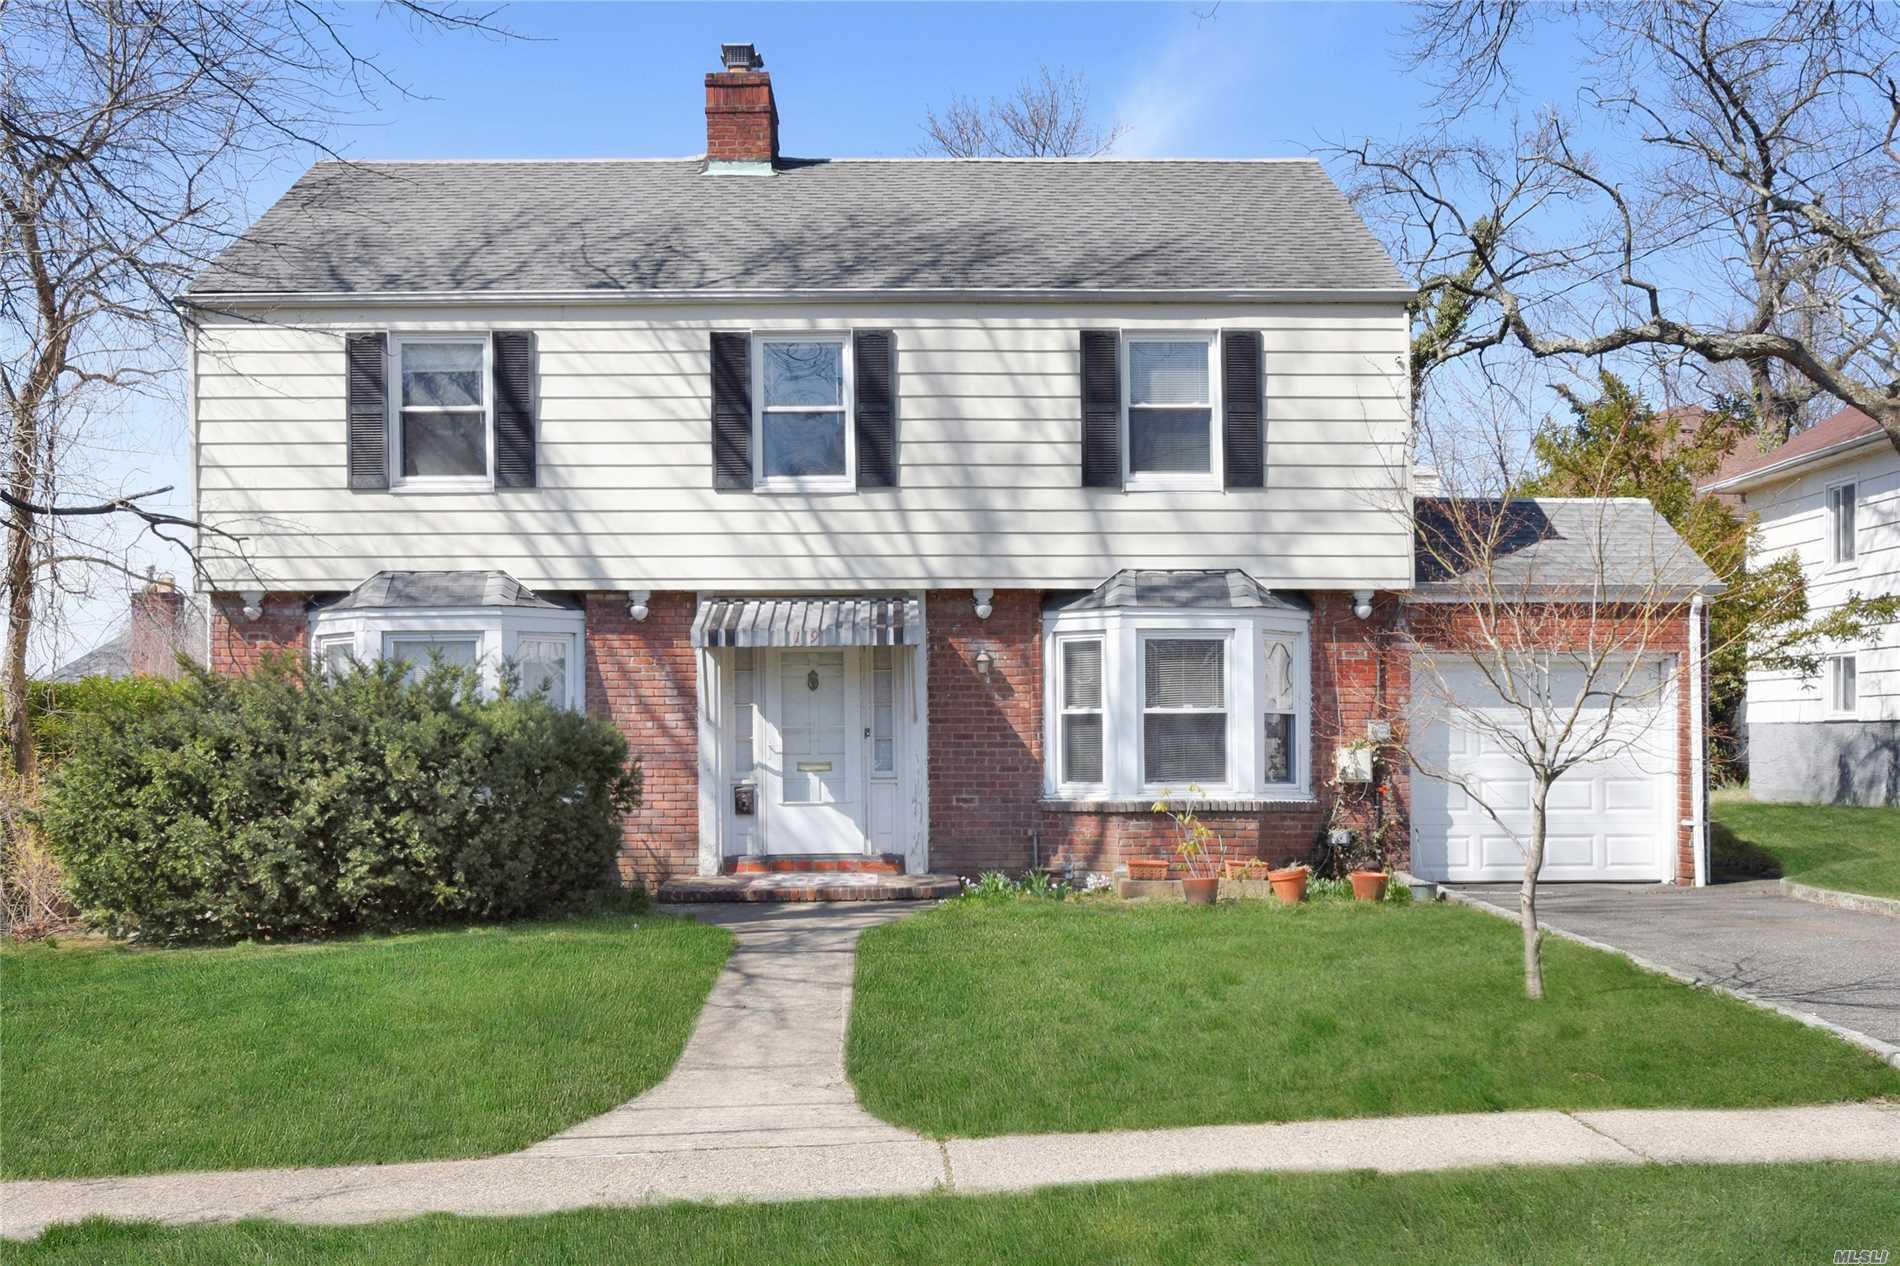 Great Neck. Charming 4Br 3Bth Brick/Frame Colonial on 60 x 100 Lot. Living Rm, Formal Dining Rm, Eat-In Kitchen, Den, 1 Bedroom & 1 Bath on the 1st Floor. The 2nd Floor Features Master Suite, 2 Additional Bedrooms & 1 Full Bath. Full Basement. 1-Car Attached Garage. Zoned EM Baker Elementary, Great Neck North Middle & High Schools. Parkwood Recreational Complex.